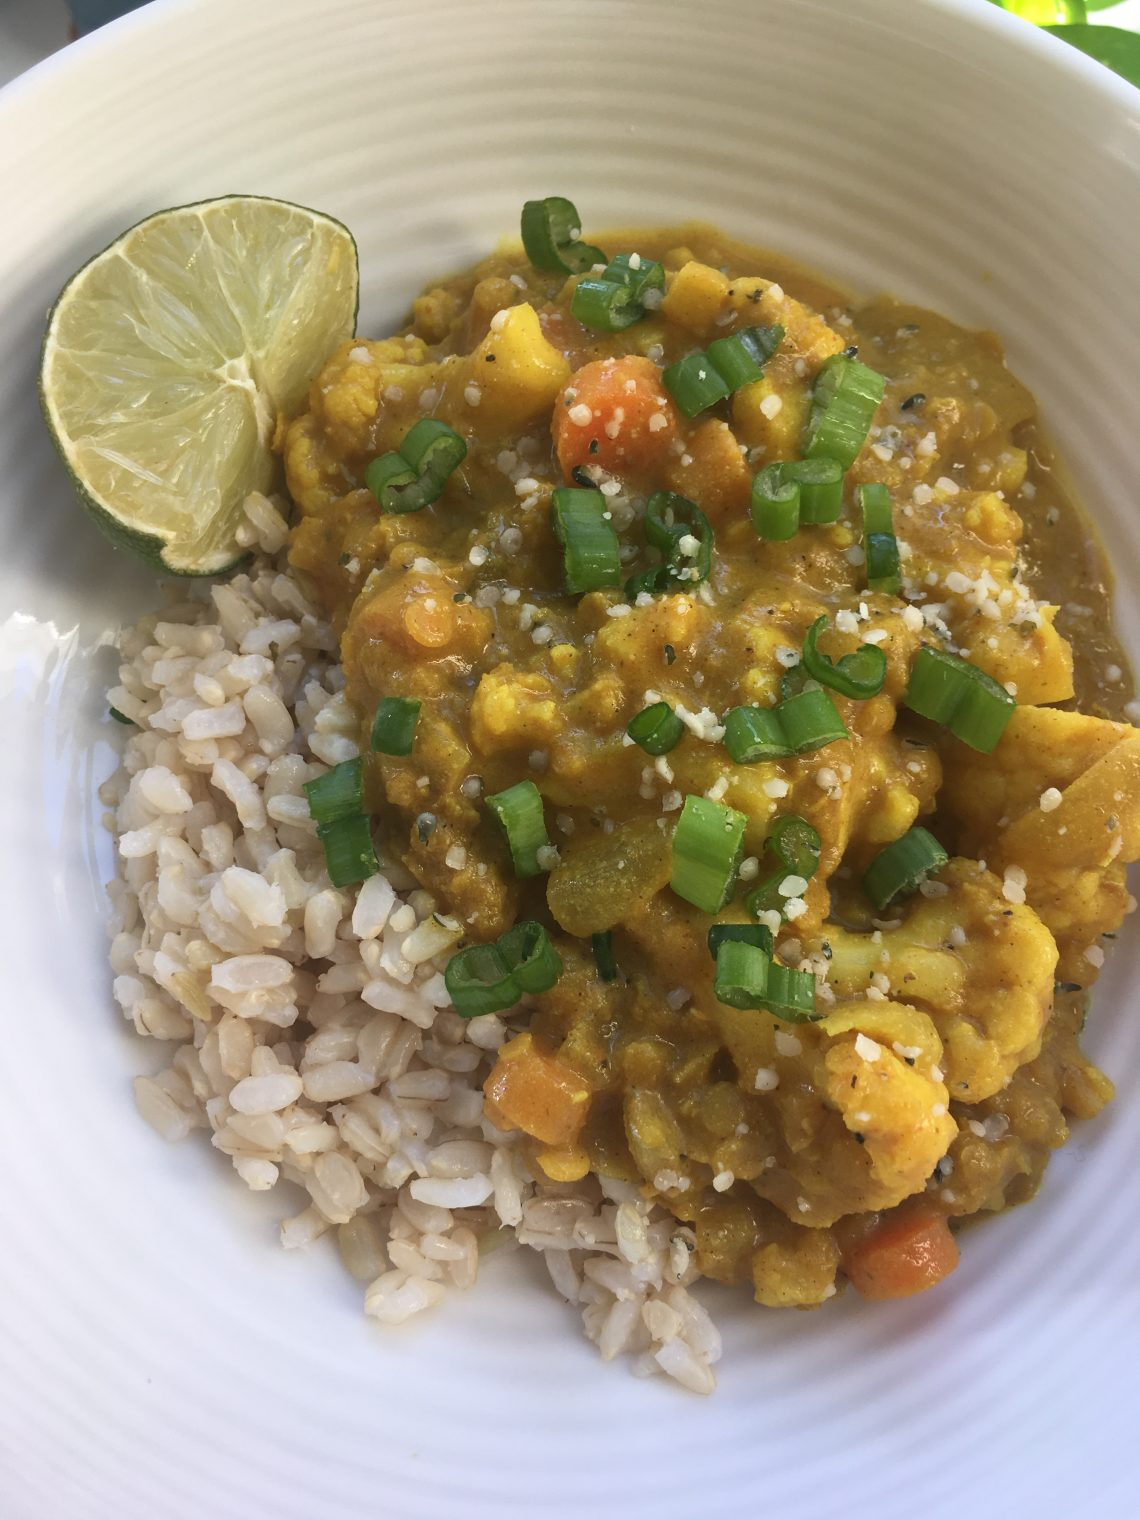 Red Lentil and Cauliflower Curry with brown rice in a white bowl